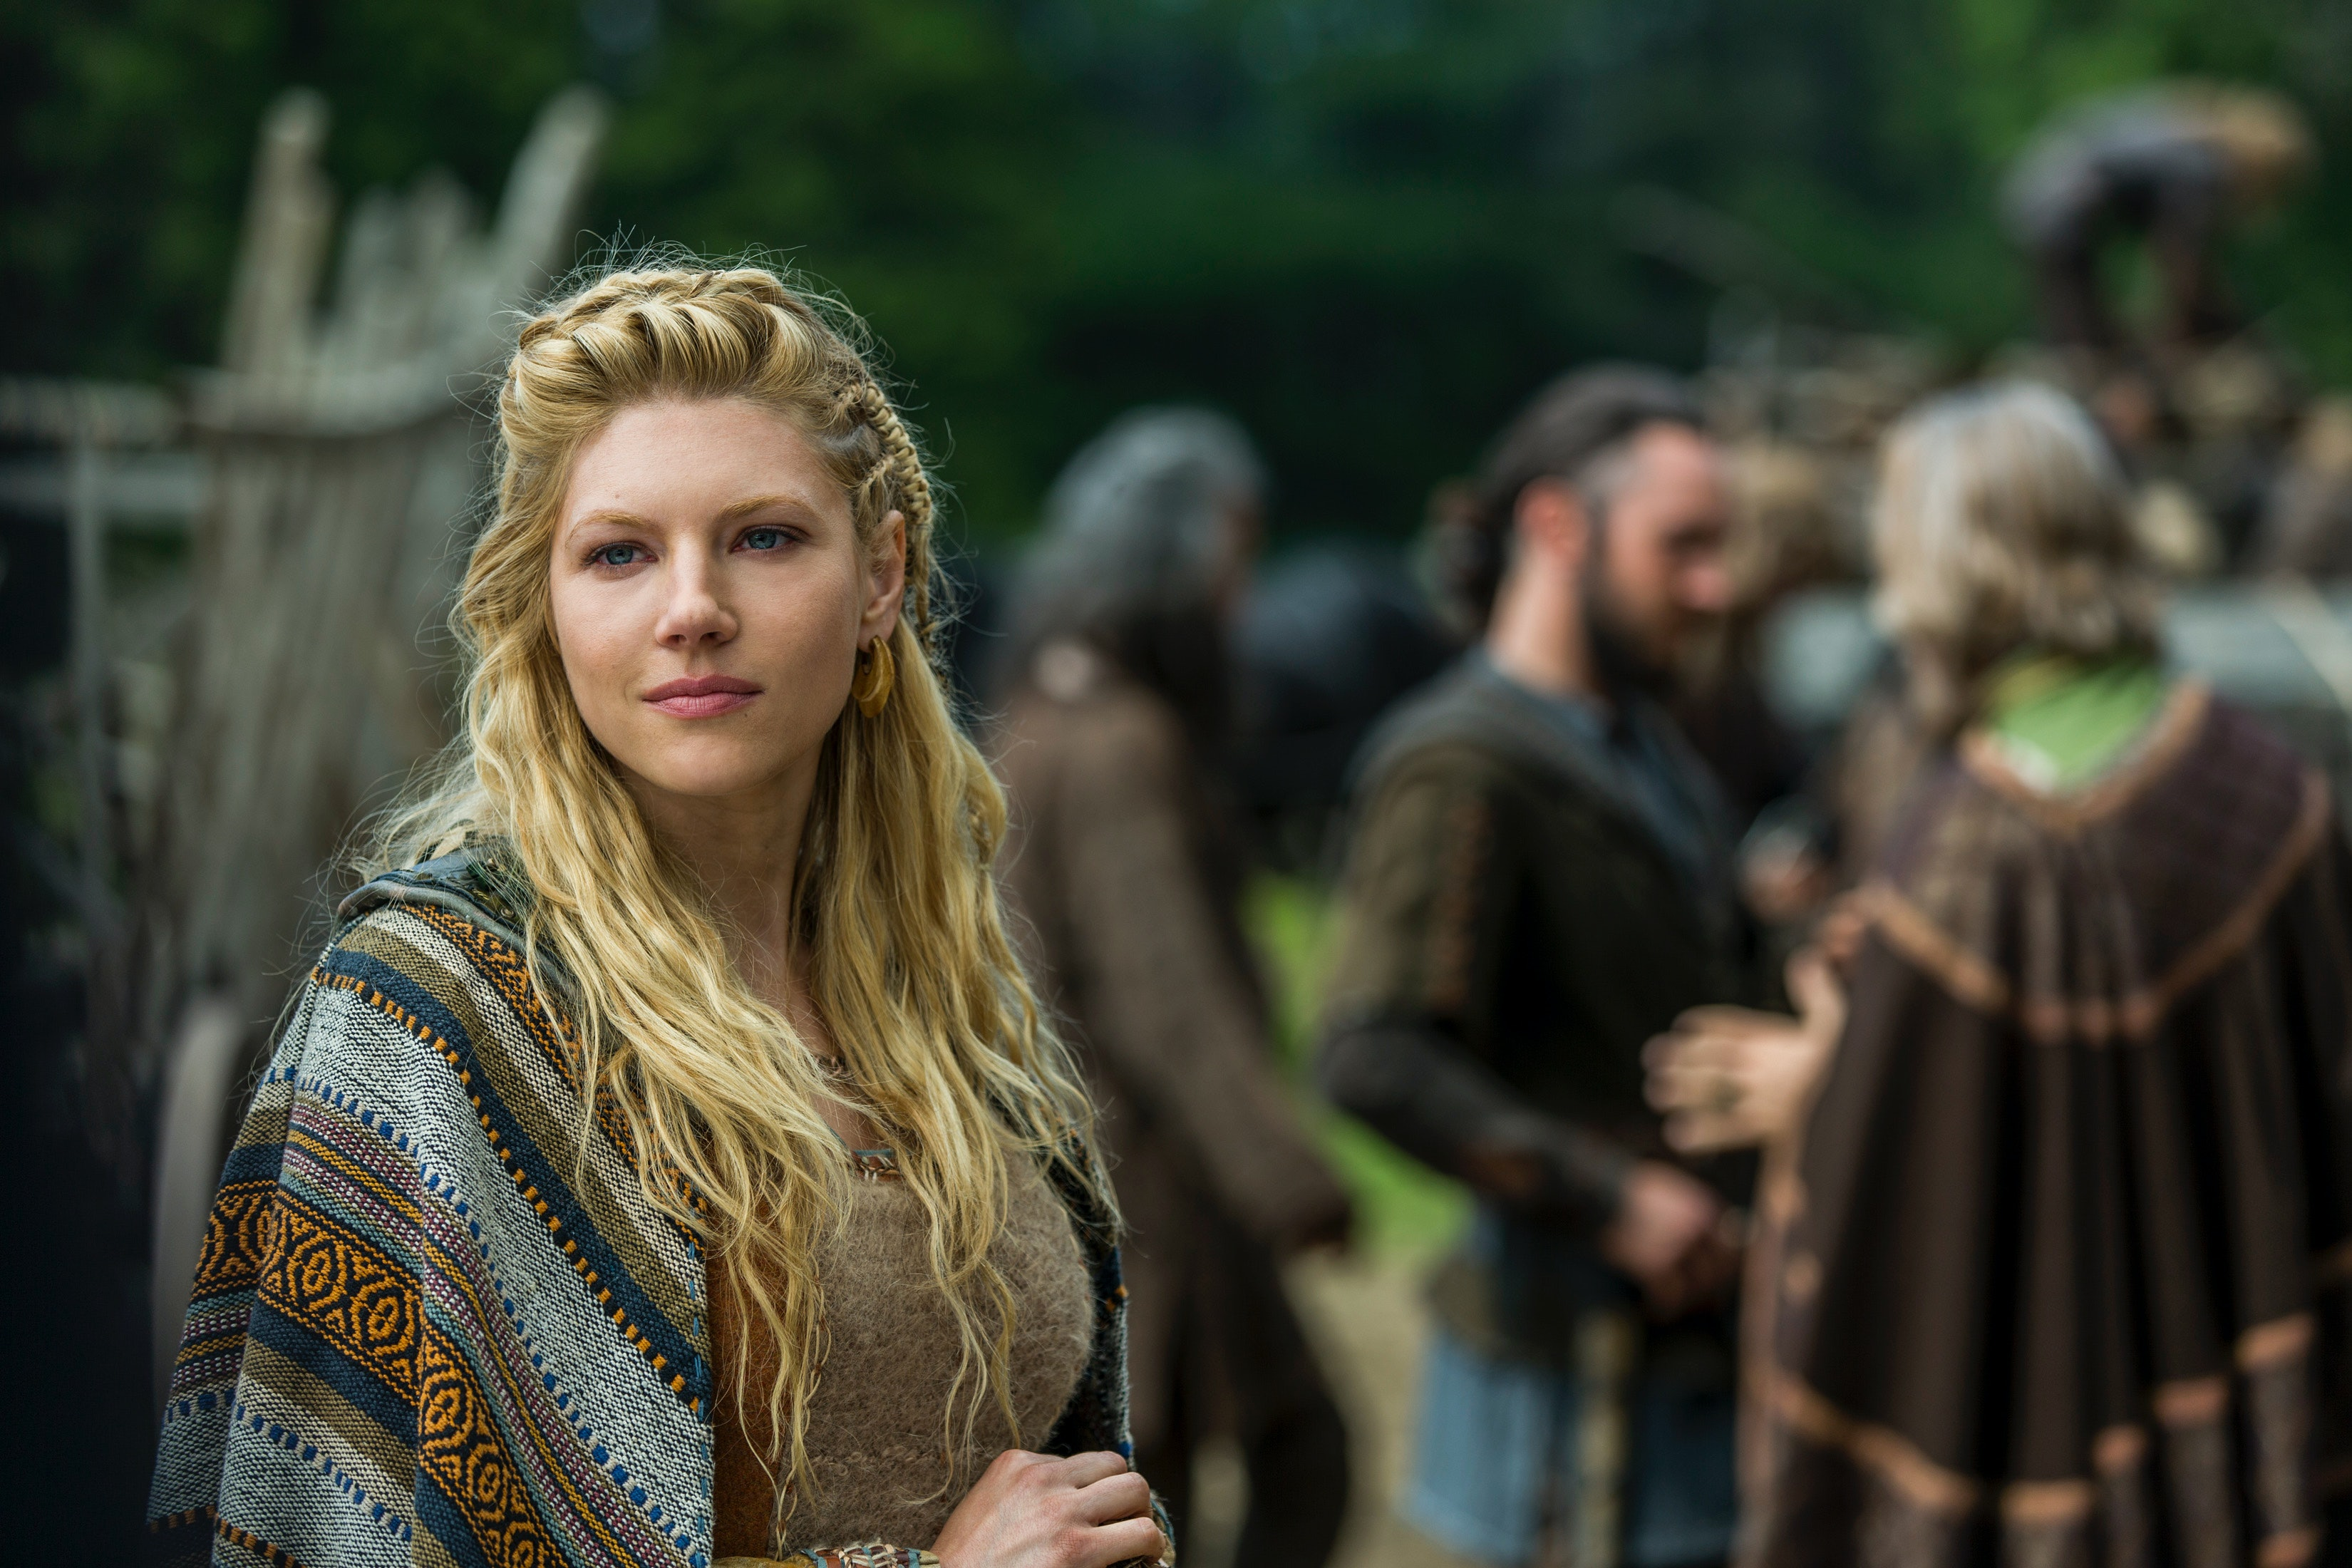 6 ways to wear 'vikings'-inspired hairstyles because intricate